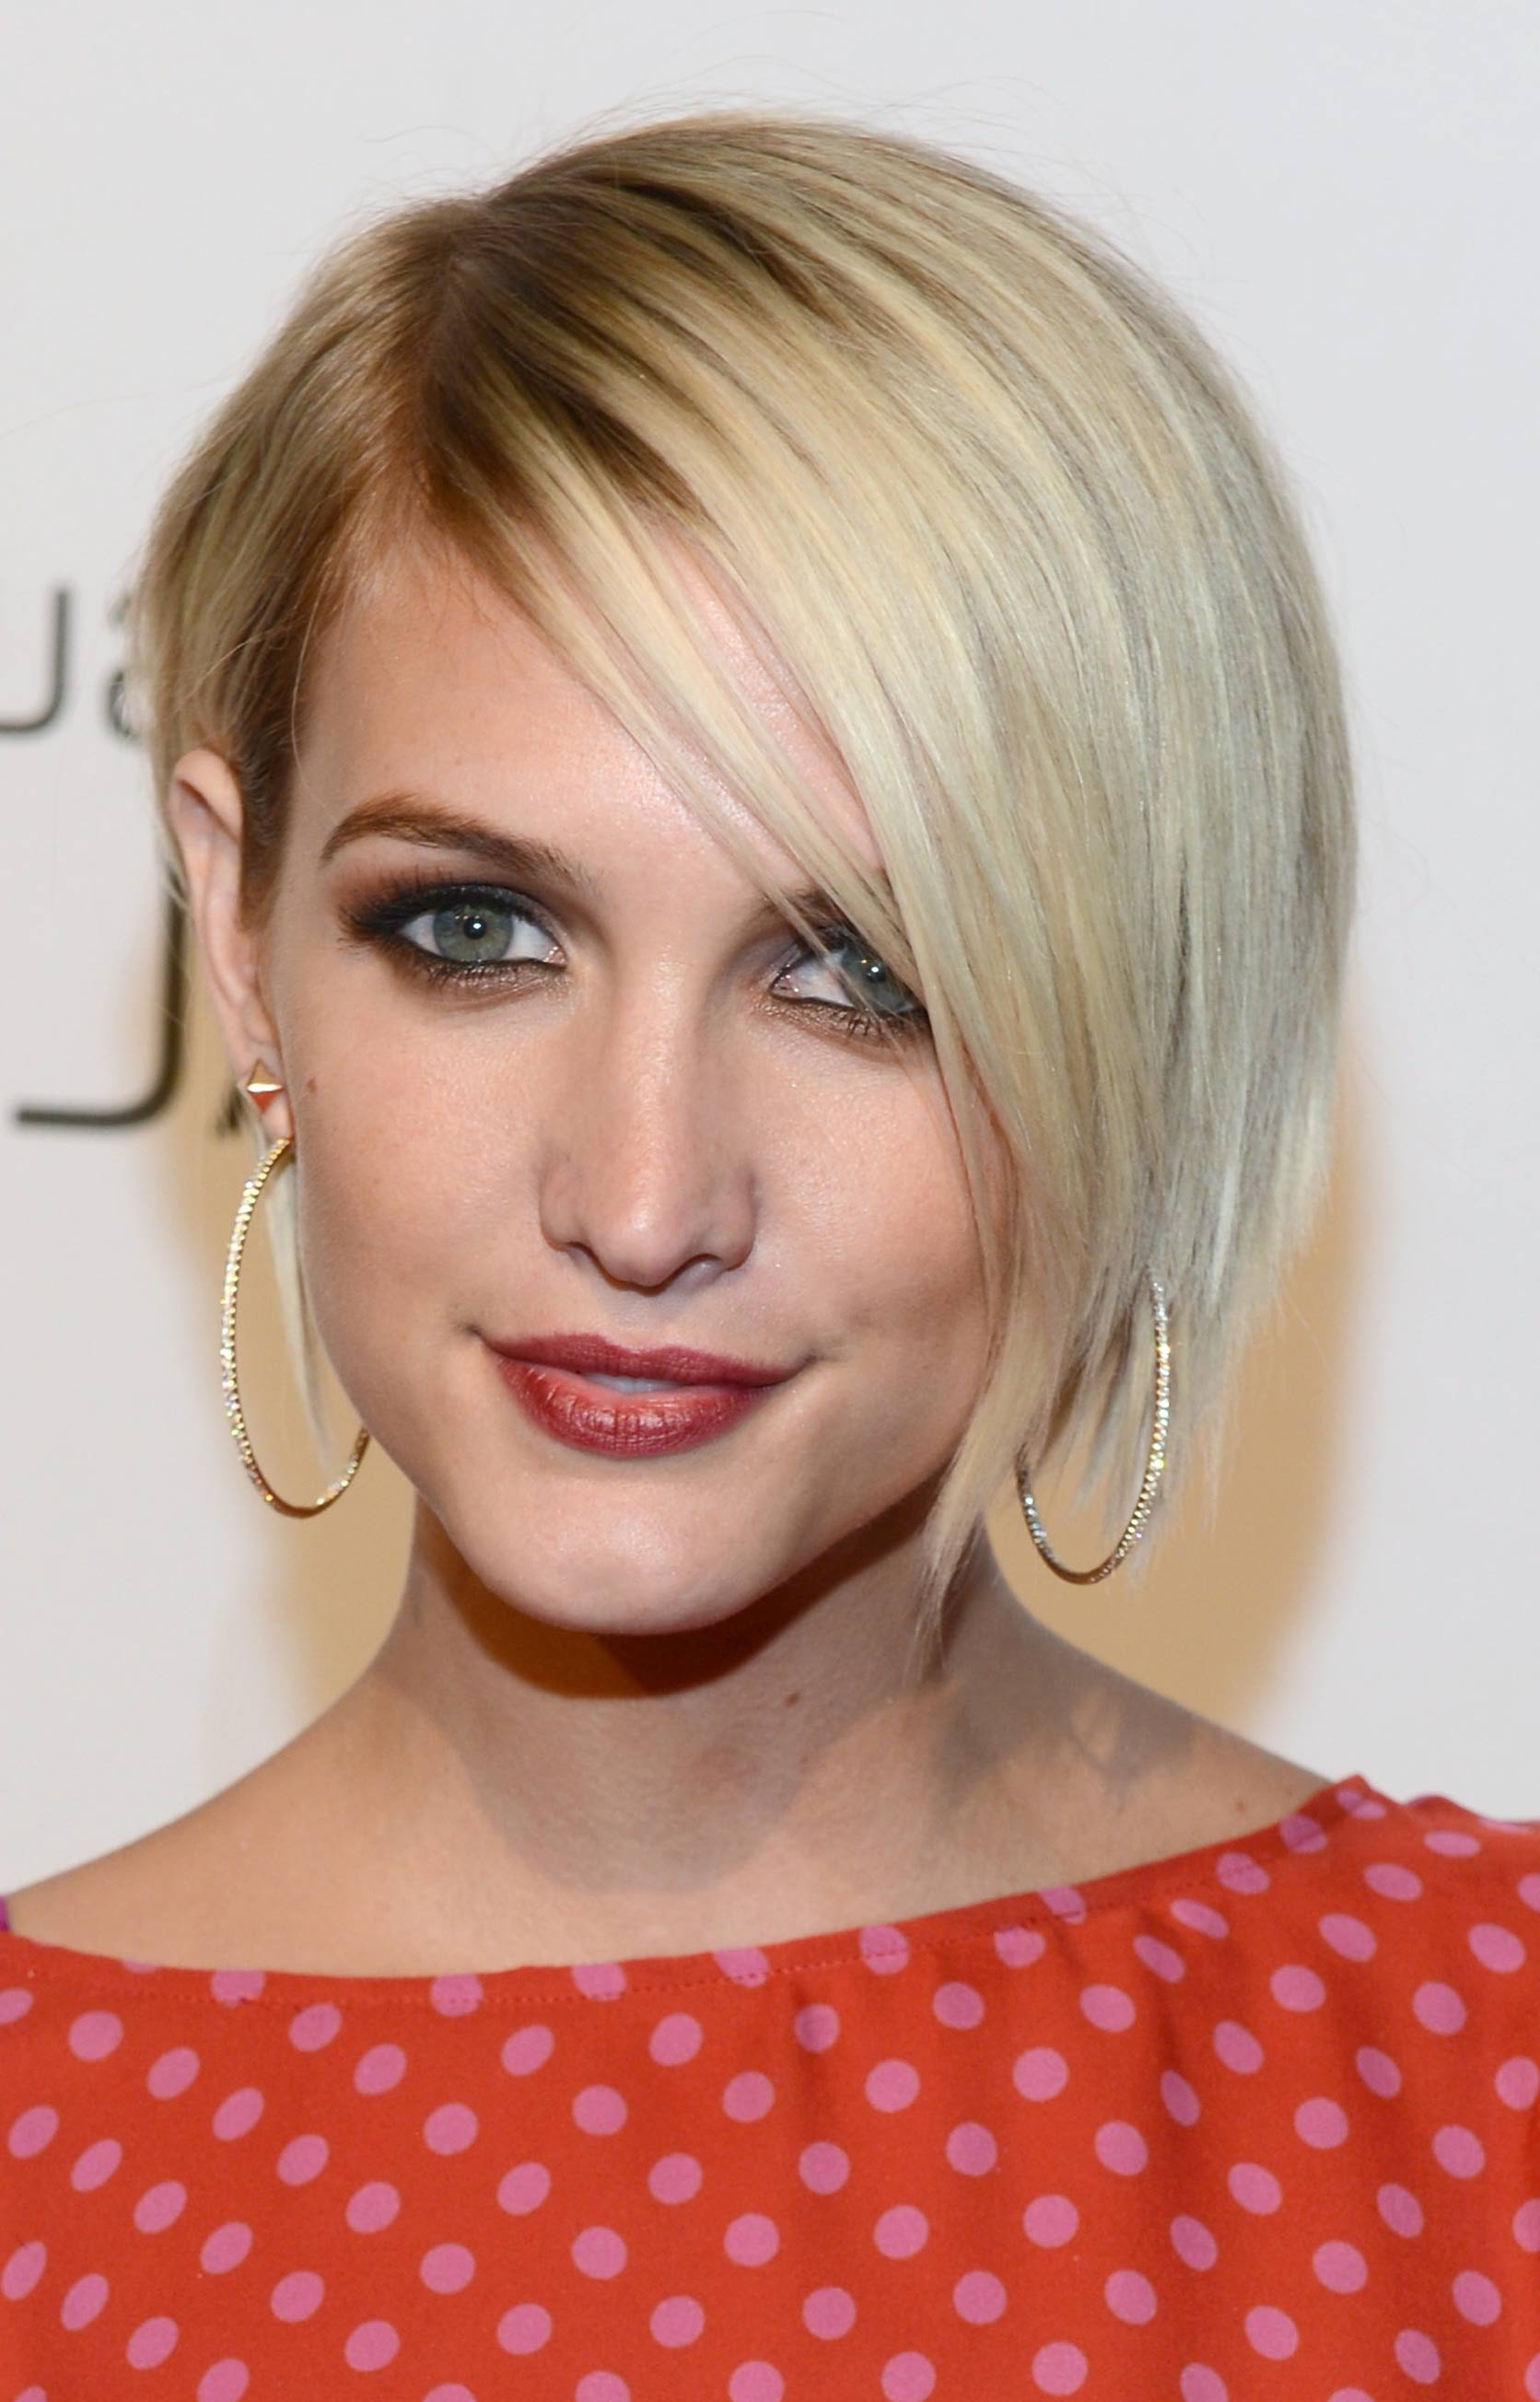 Pixie Hairstyles For Fine Thin Hair Ashlee Simpson Asymmetrical Pertaining To Most Current Pixie Hairstyles For Fine Hair (View 13 of 15)